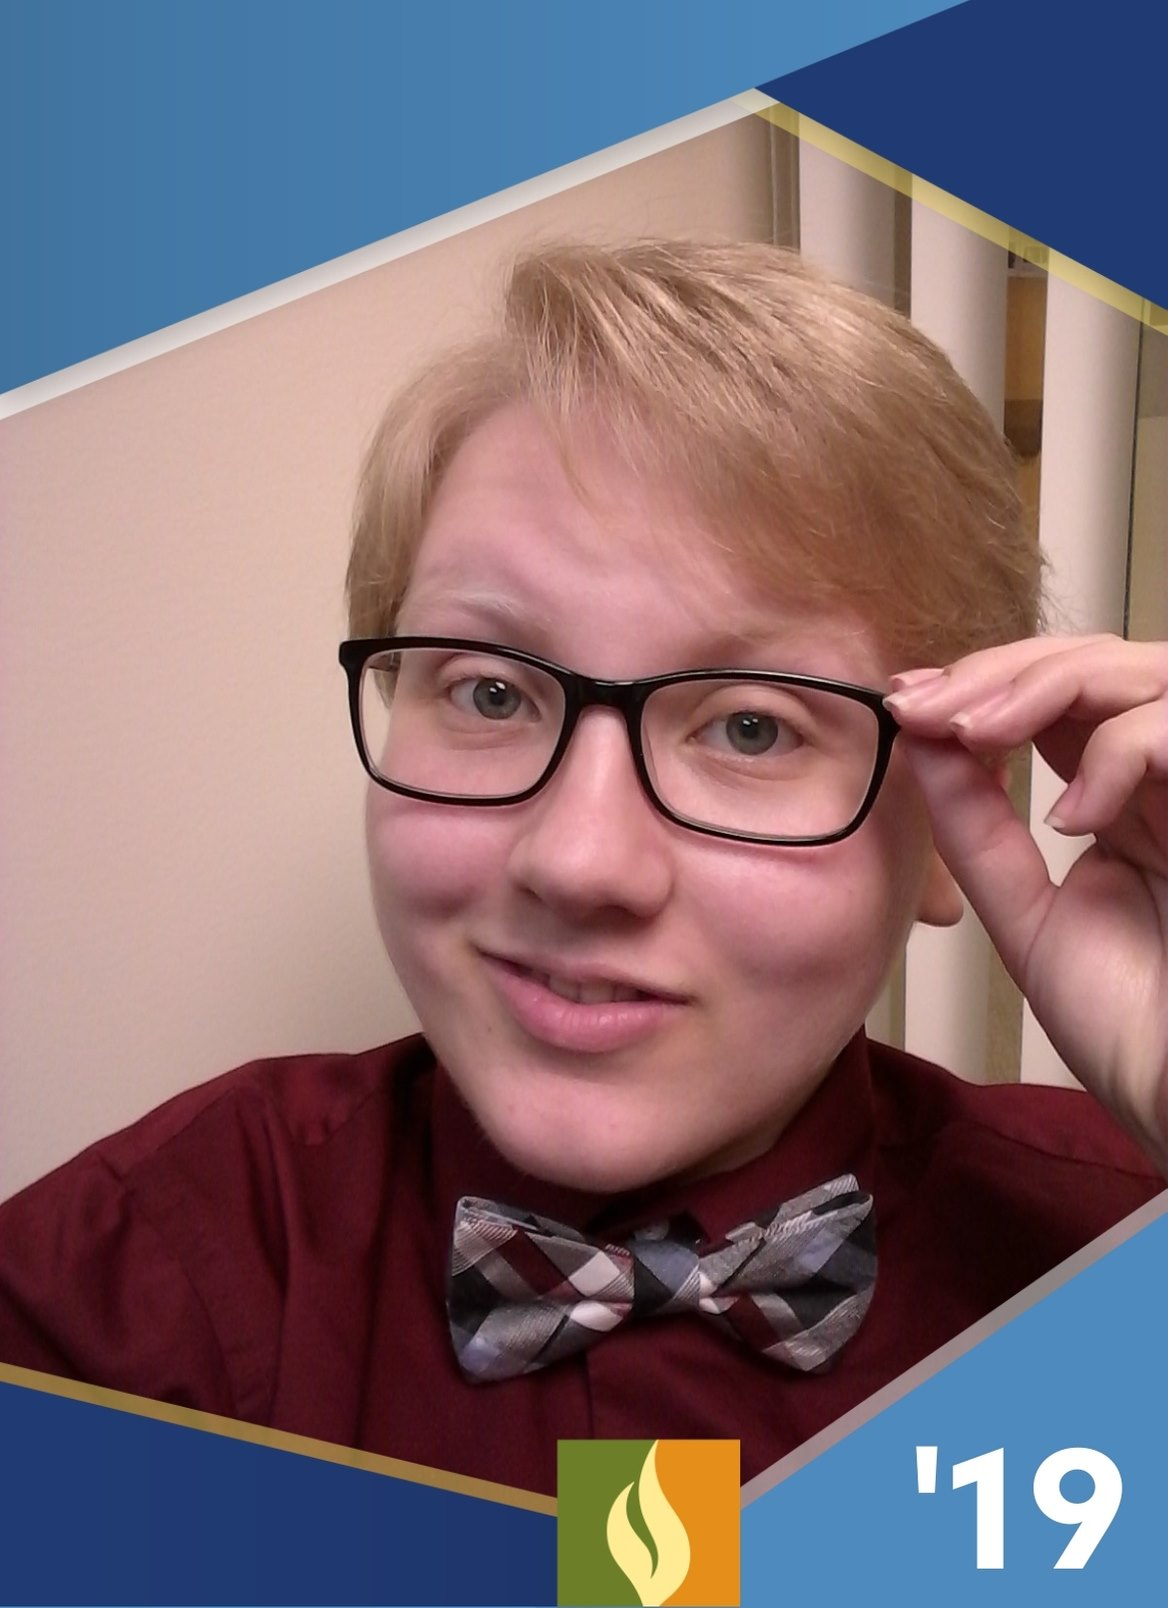 headshot of blonde person with black rimmed glasses and a bow tie